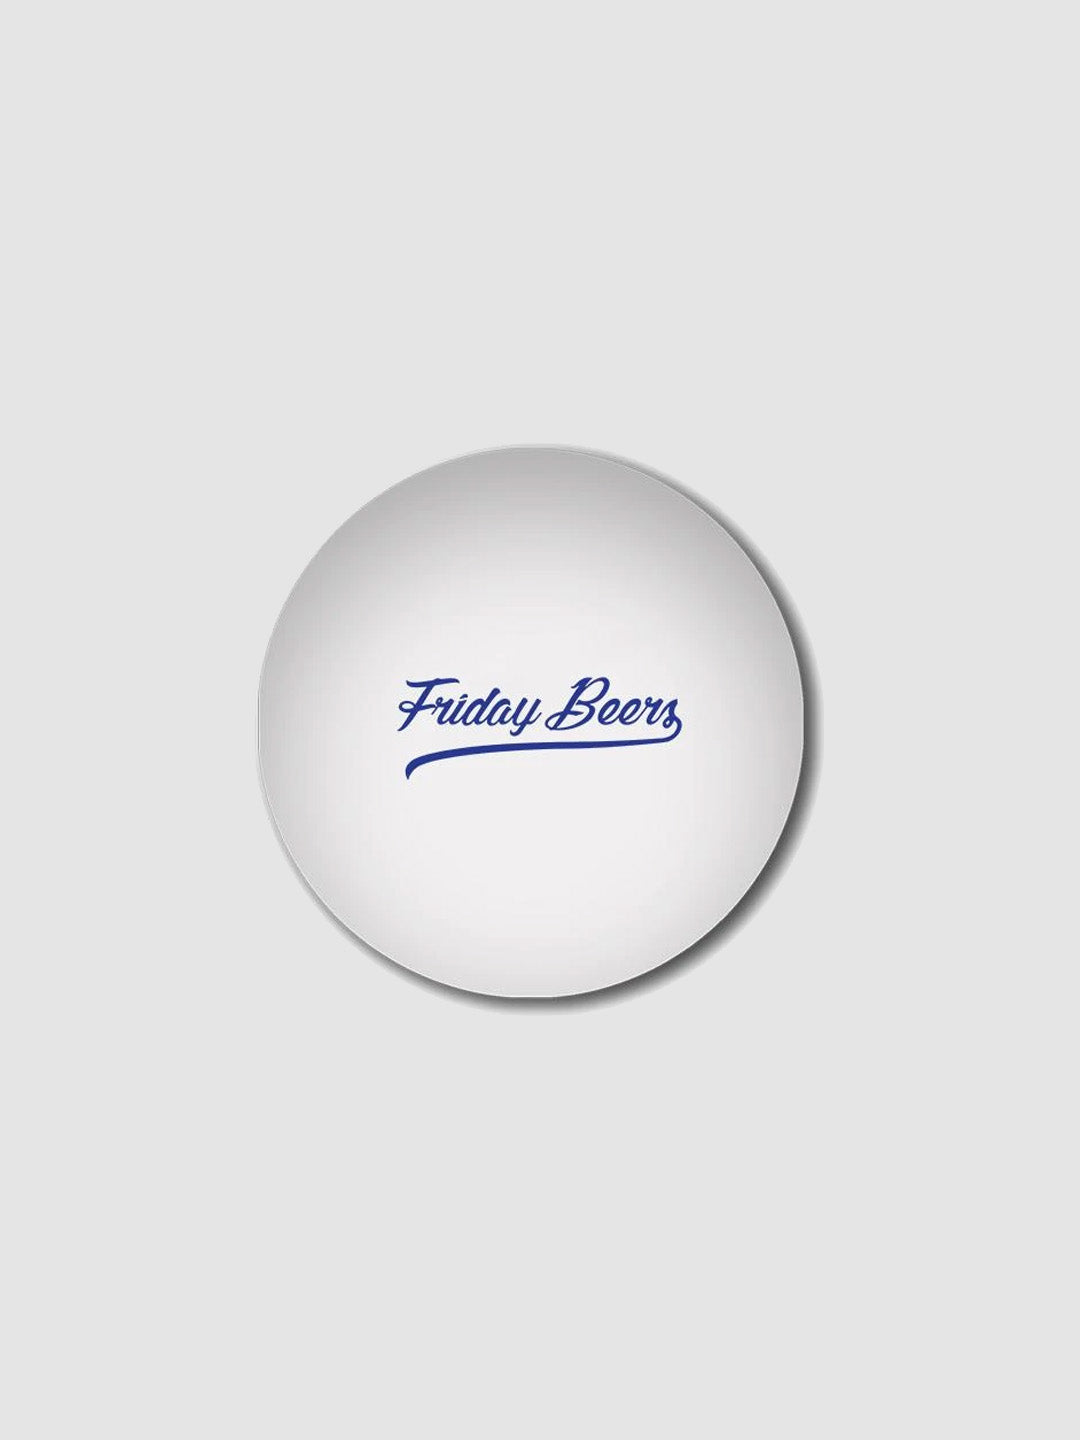 Friday Beers Ping Pong Ball Pack